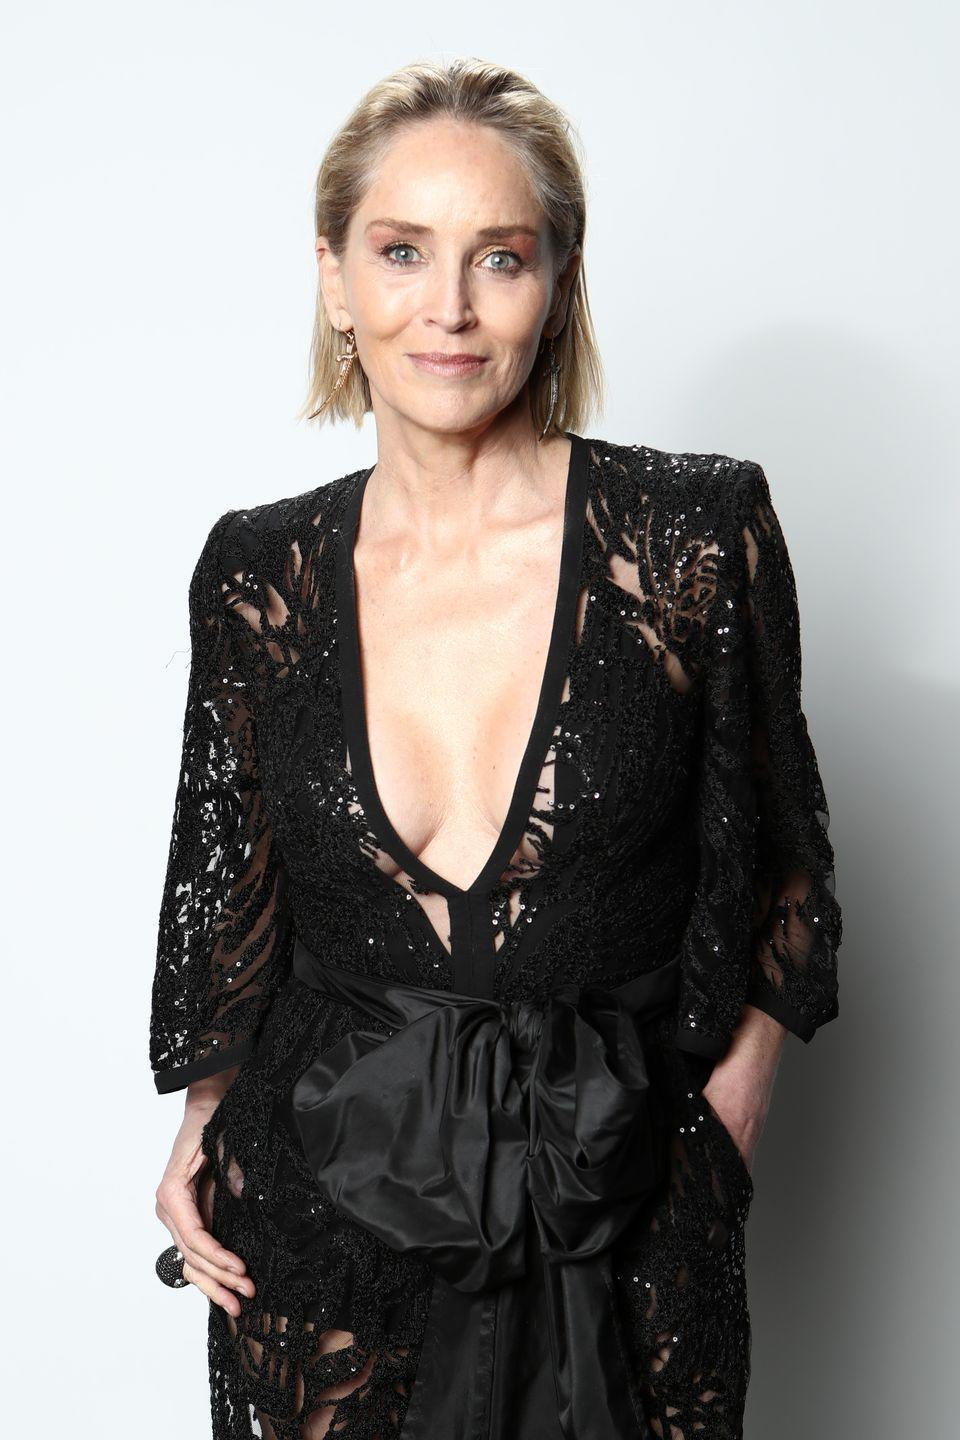 <p>Stone's career may have cooled down a slight bit since the '90s, but she's still an extremely popular actress landing killer roles. Most recently, Stone has appeared in movies like <em>The Disaster Artist</em> and <em>Life on the Line</em>. Her role in HBO's <em>Mosaic</em> has been her biggest as of late.</p>